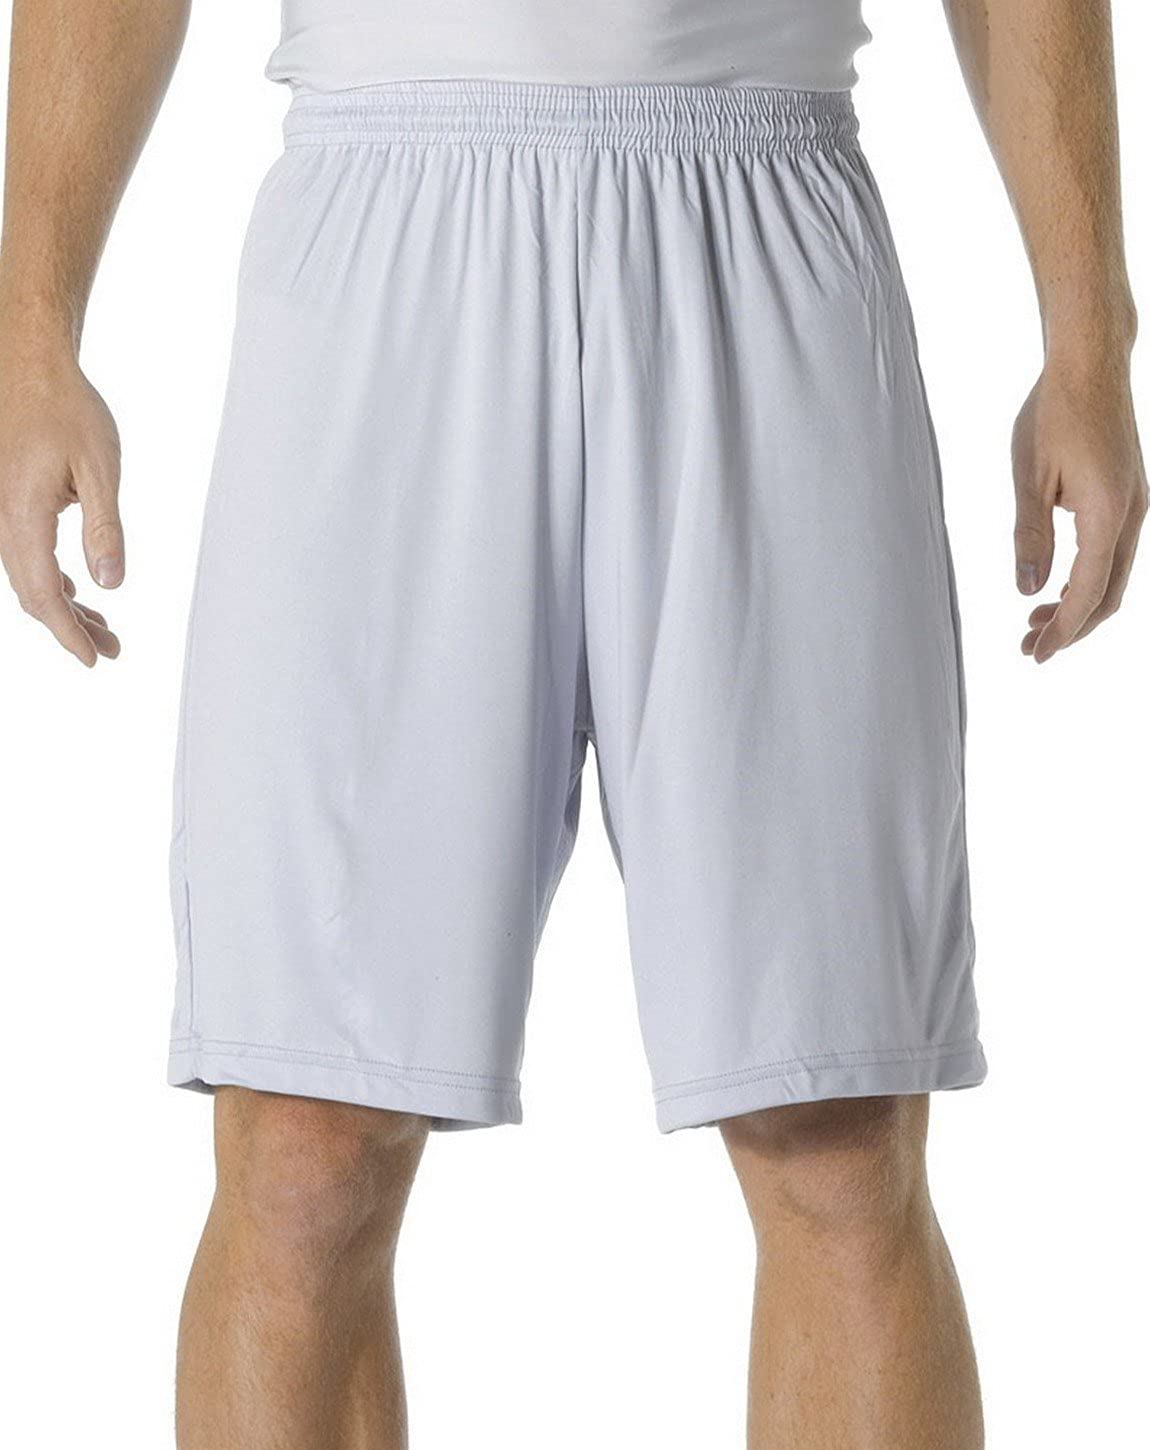 A4 N5283 Adult Cooling Performance 9 Shorts Silver X-Large